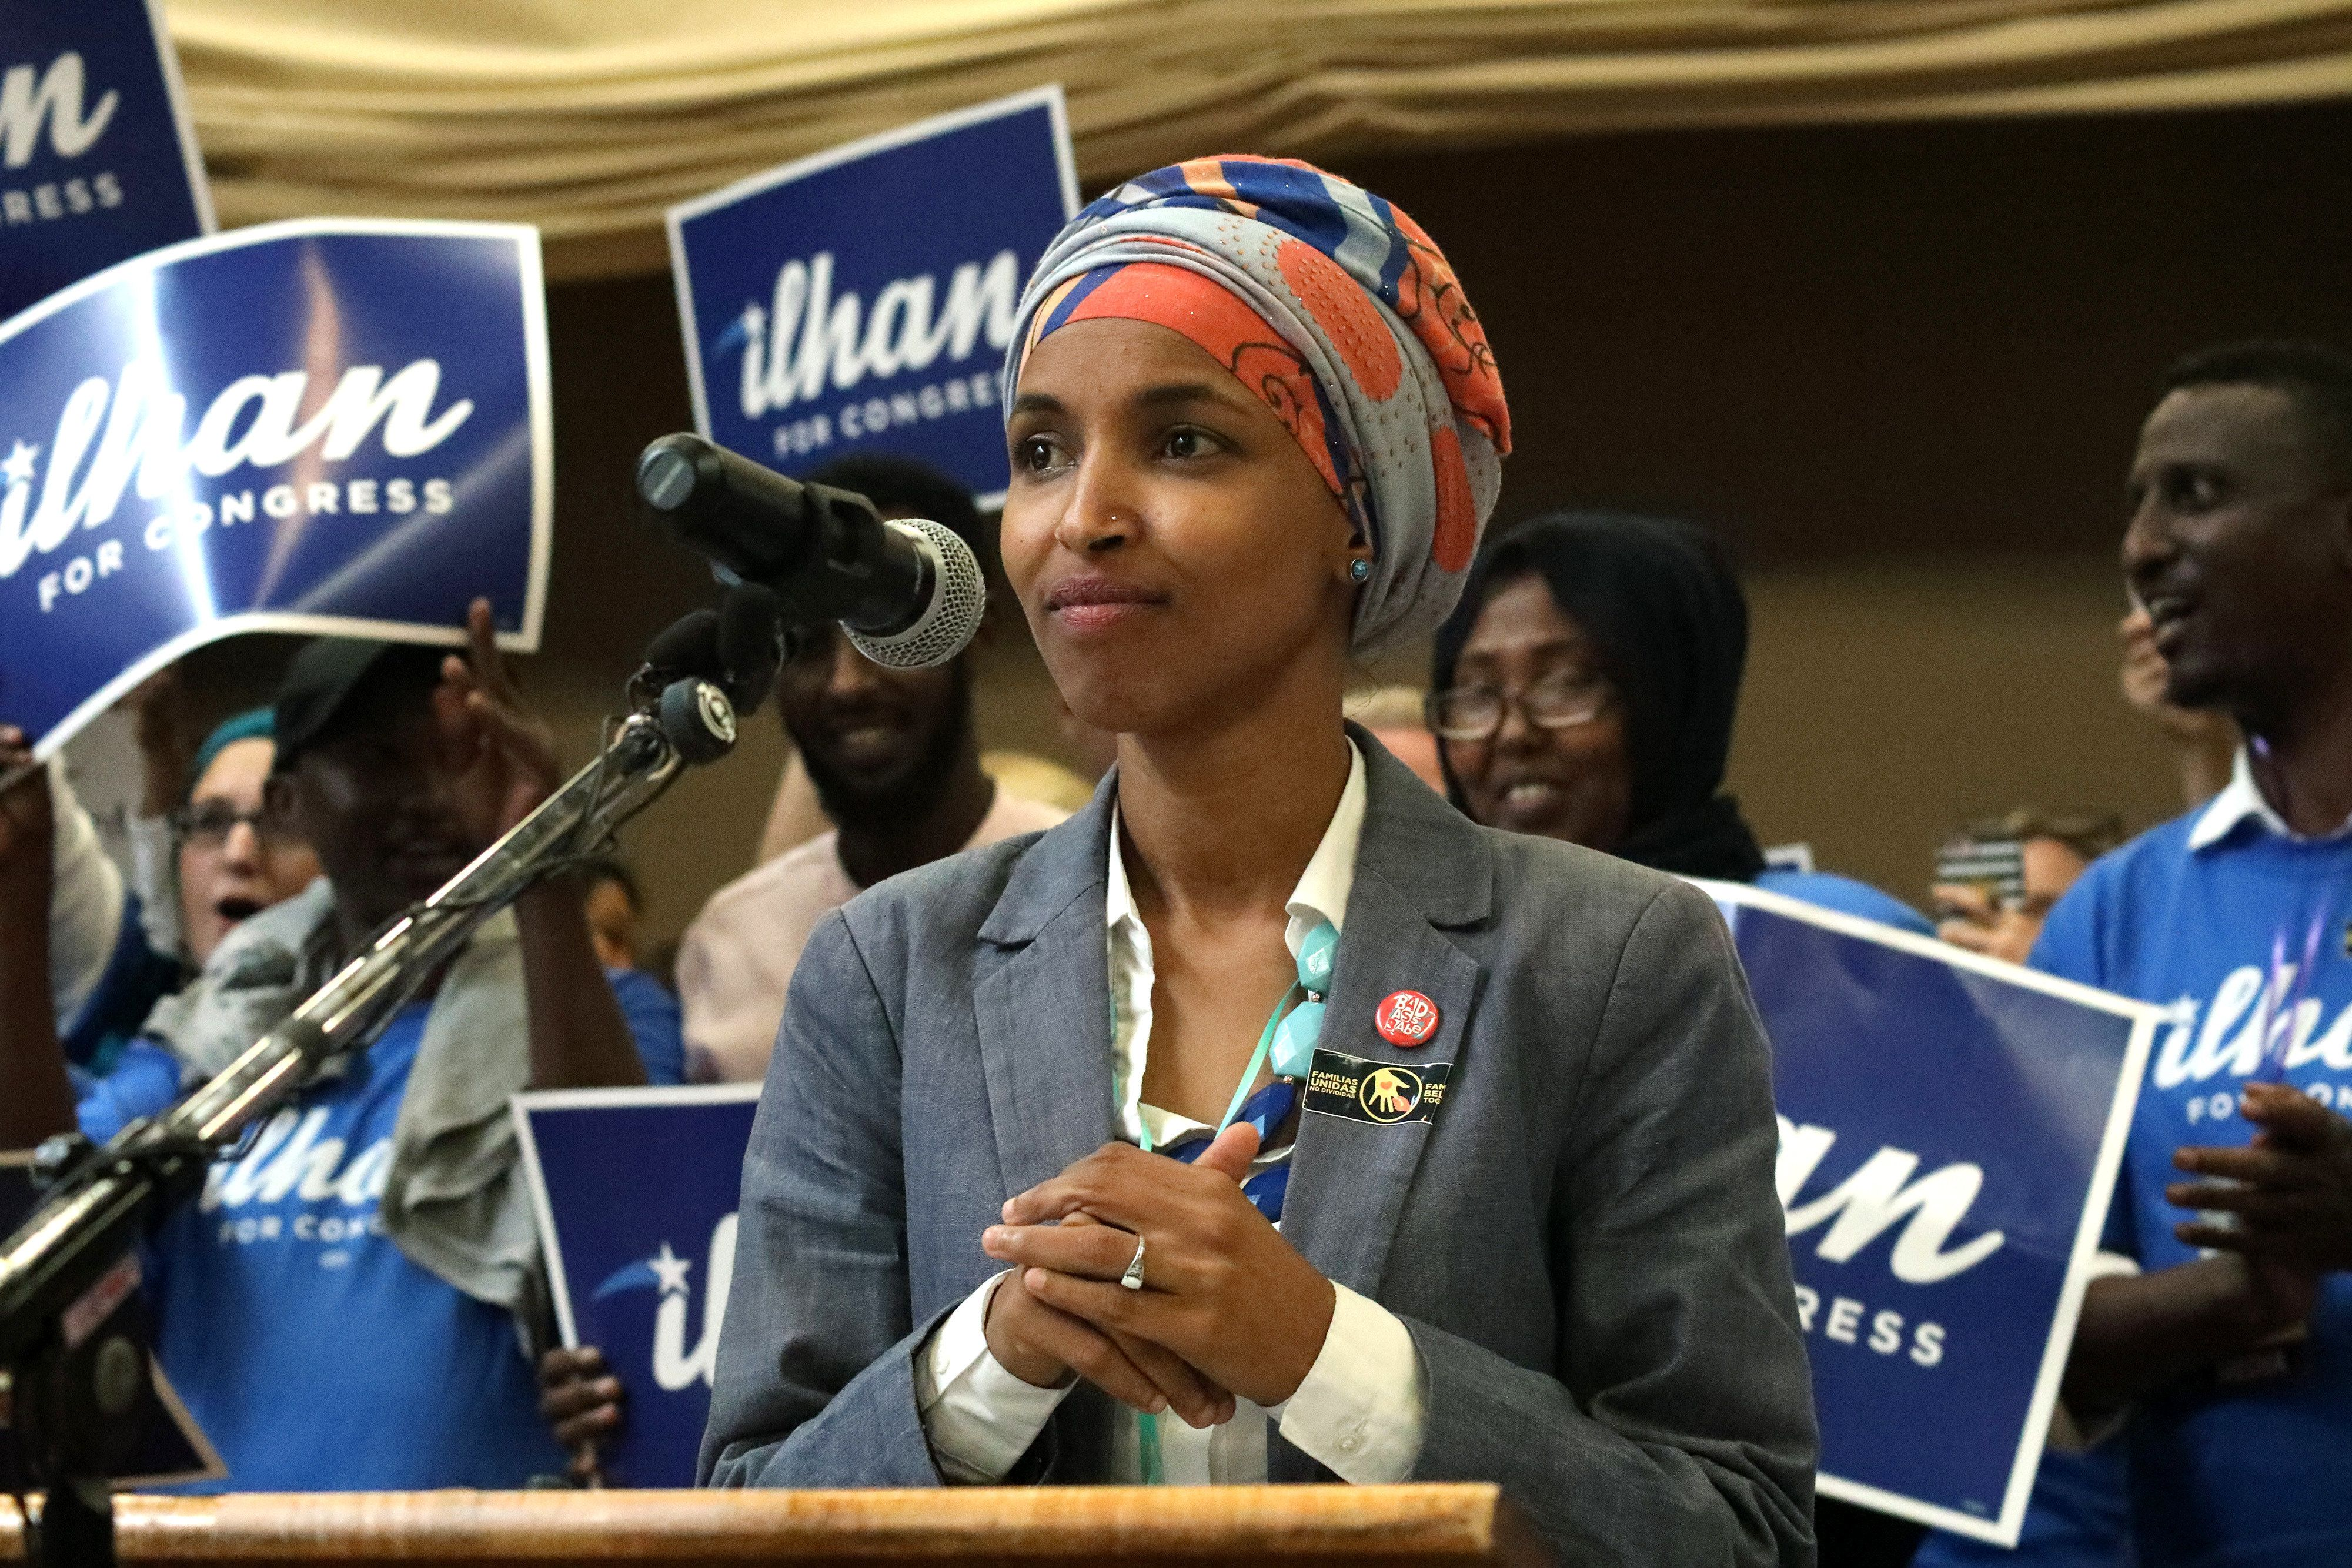 Muslim women make history with wins in Michigan, Minnesota